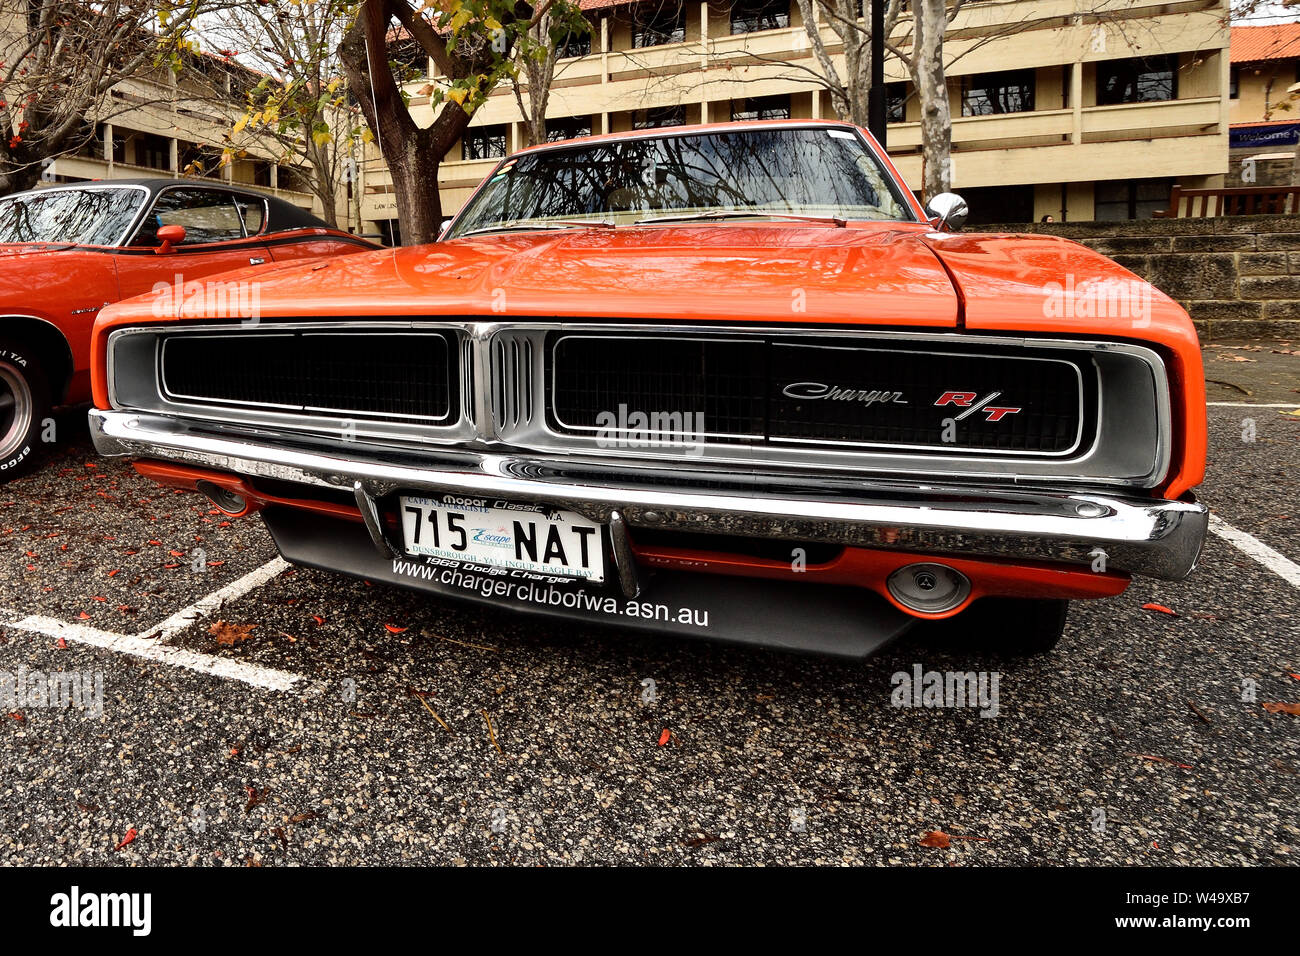 Dodge Charger 1969 High Resolution Stock Photography And Images Alamy